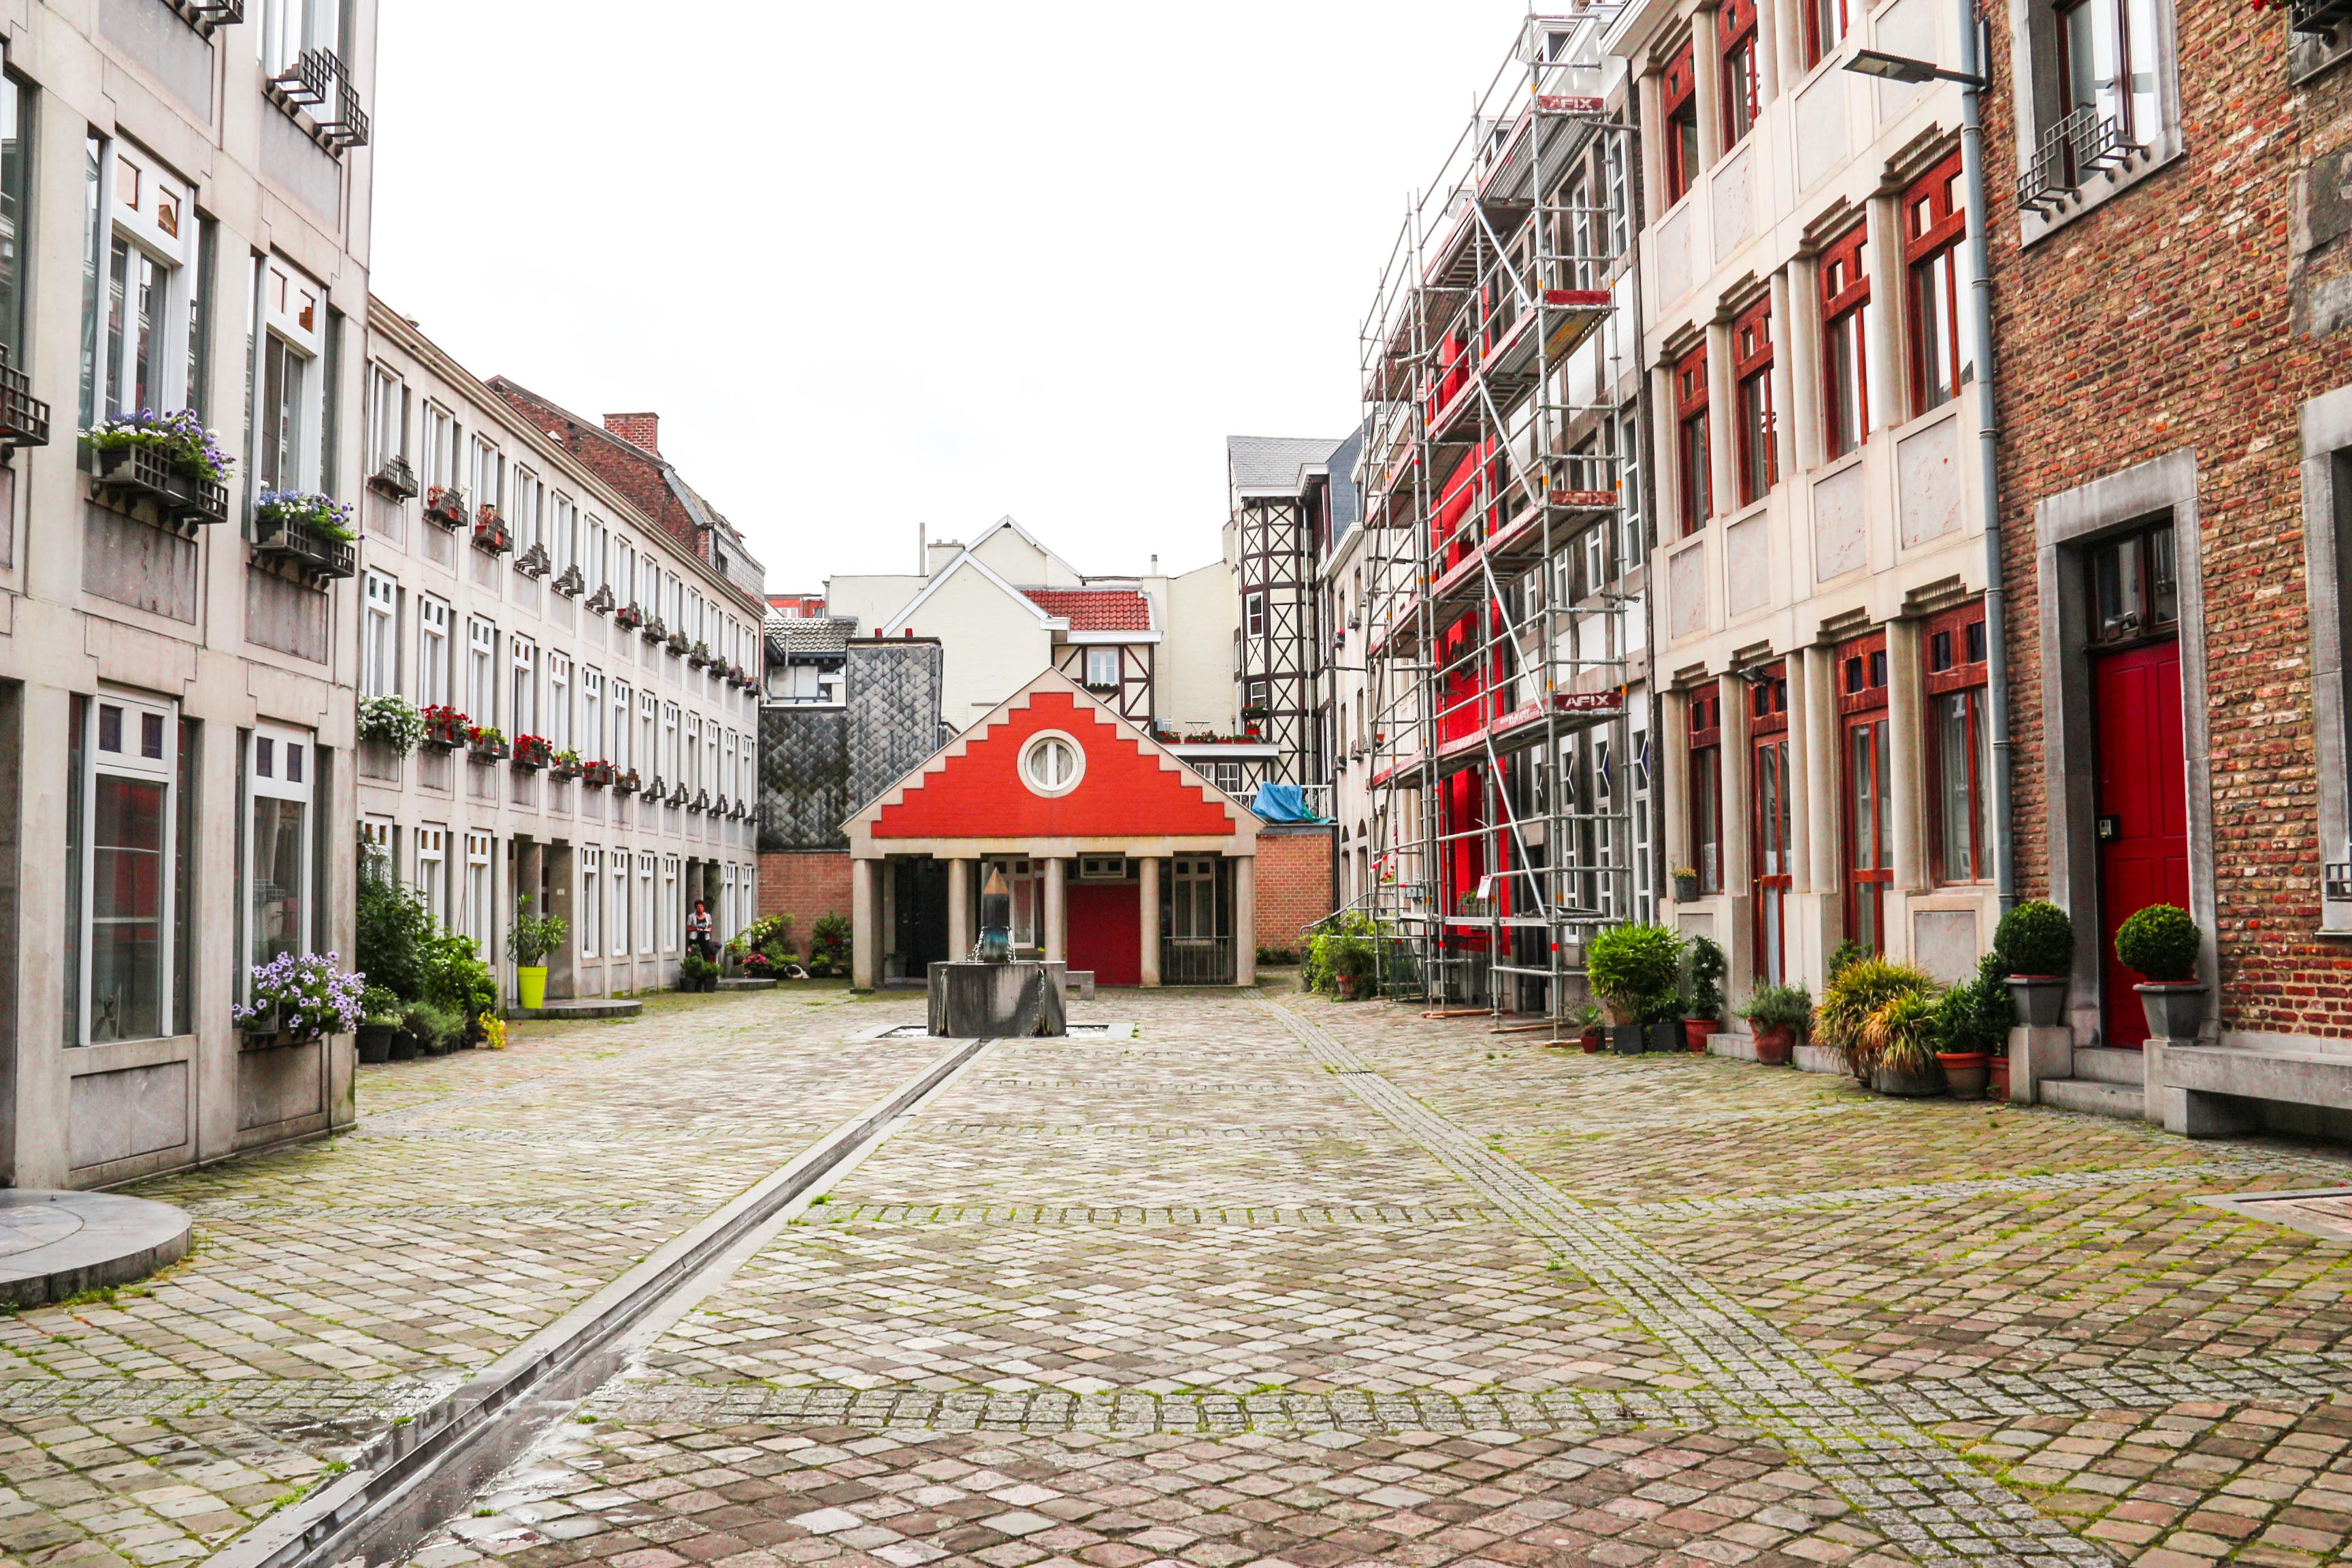 A guide to Liege Belgium. Everything you need to know before you take a weekend trip there including a climb down Montagne de Bueren